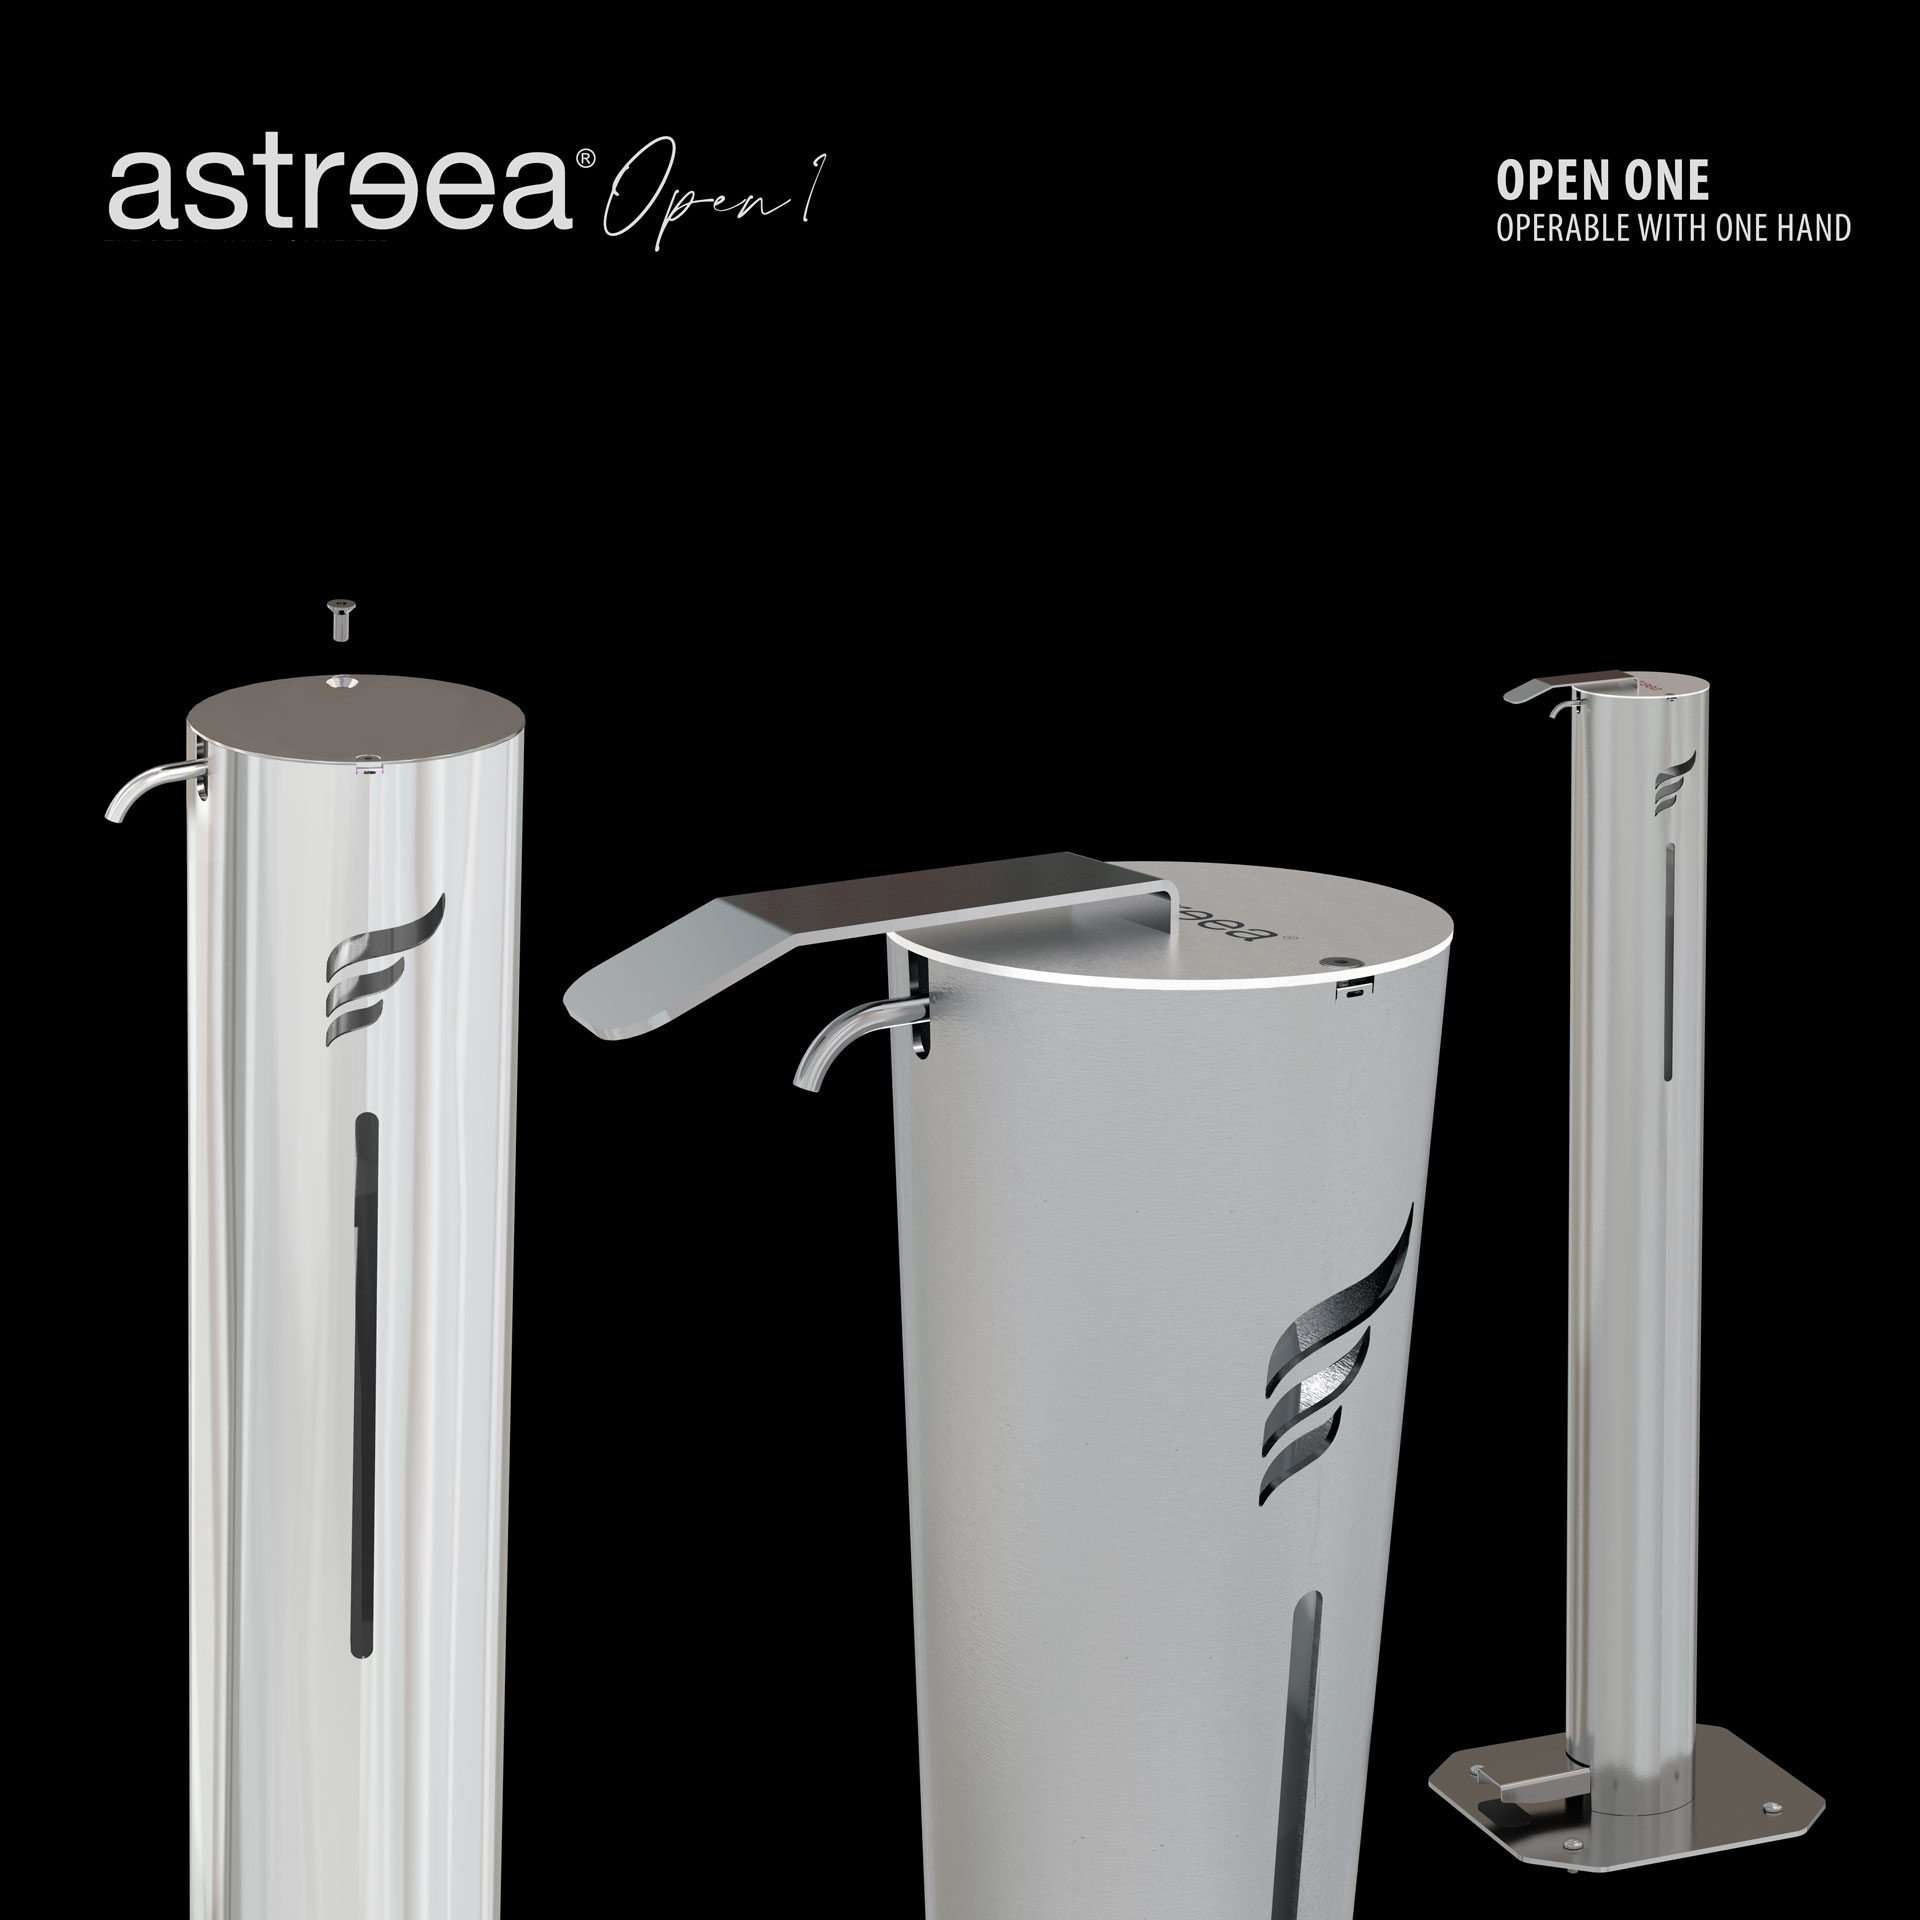 Astreea® Open. Because we care!